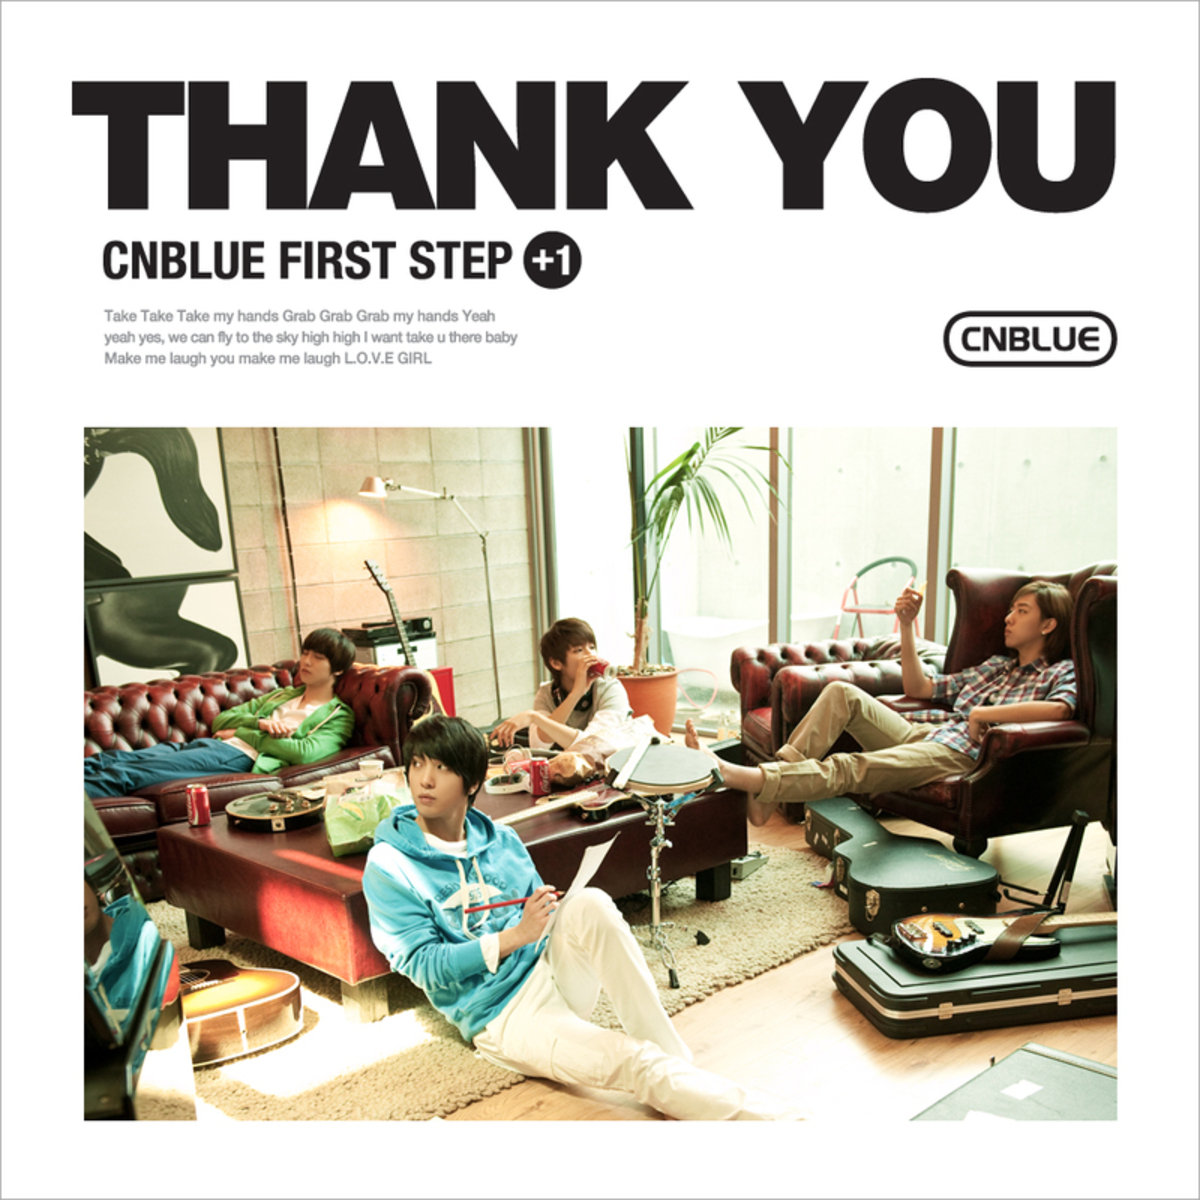 CNBLUE - Vol.1 [First Step+1] Thank You _32989